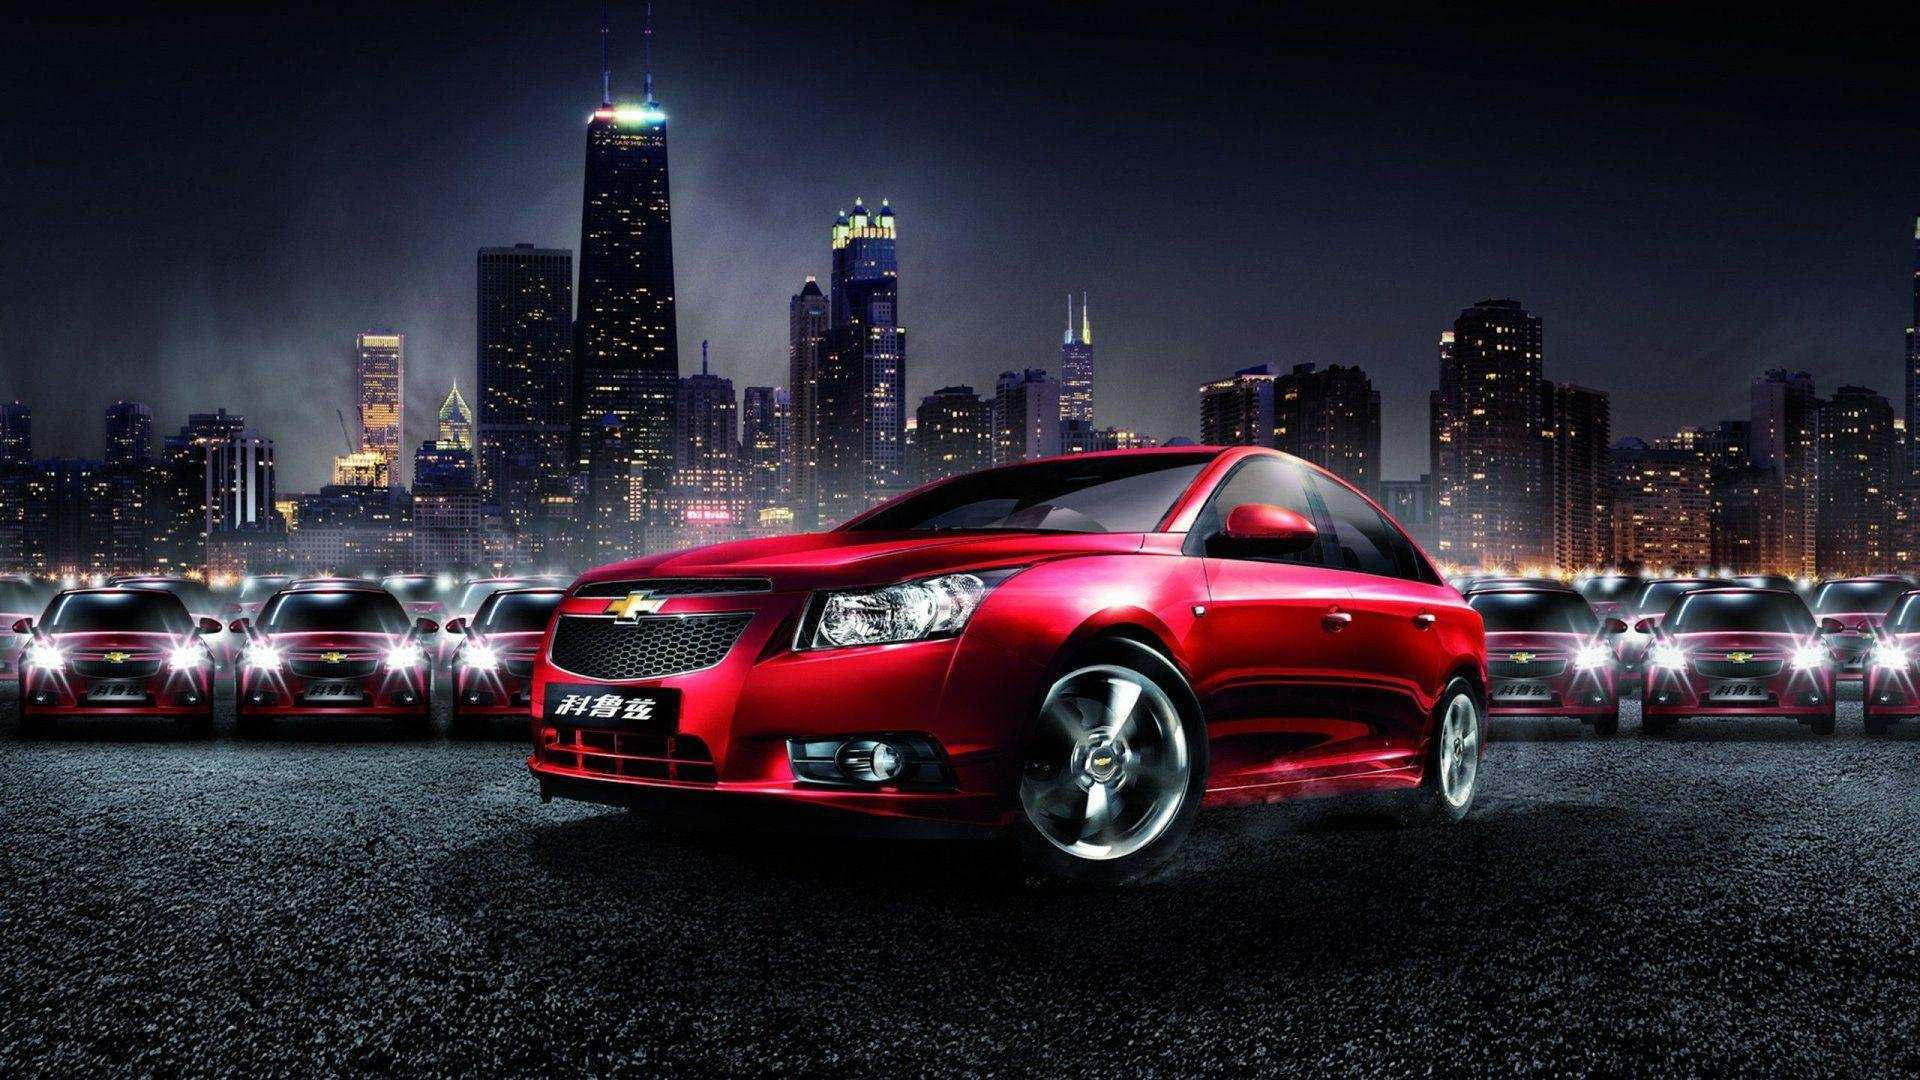 83 All New Chevy Cruze Wallpapers Wallpaper for Chevy Cruze Wallpapers